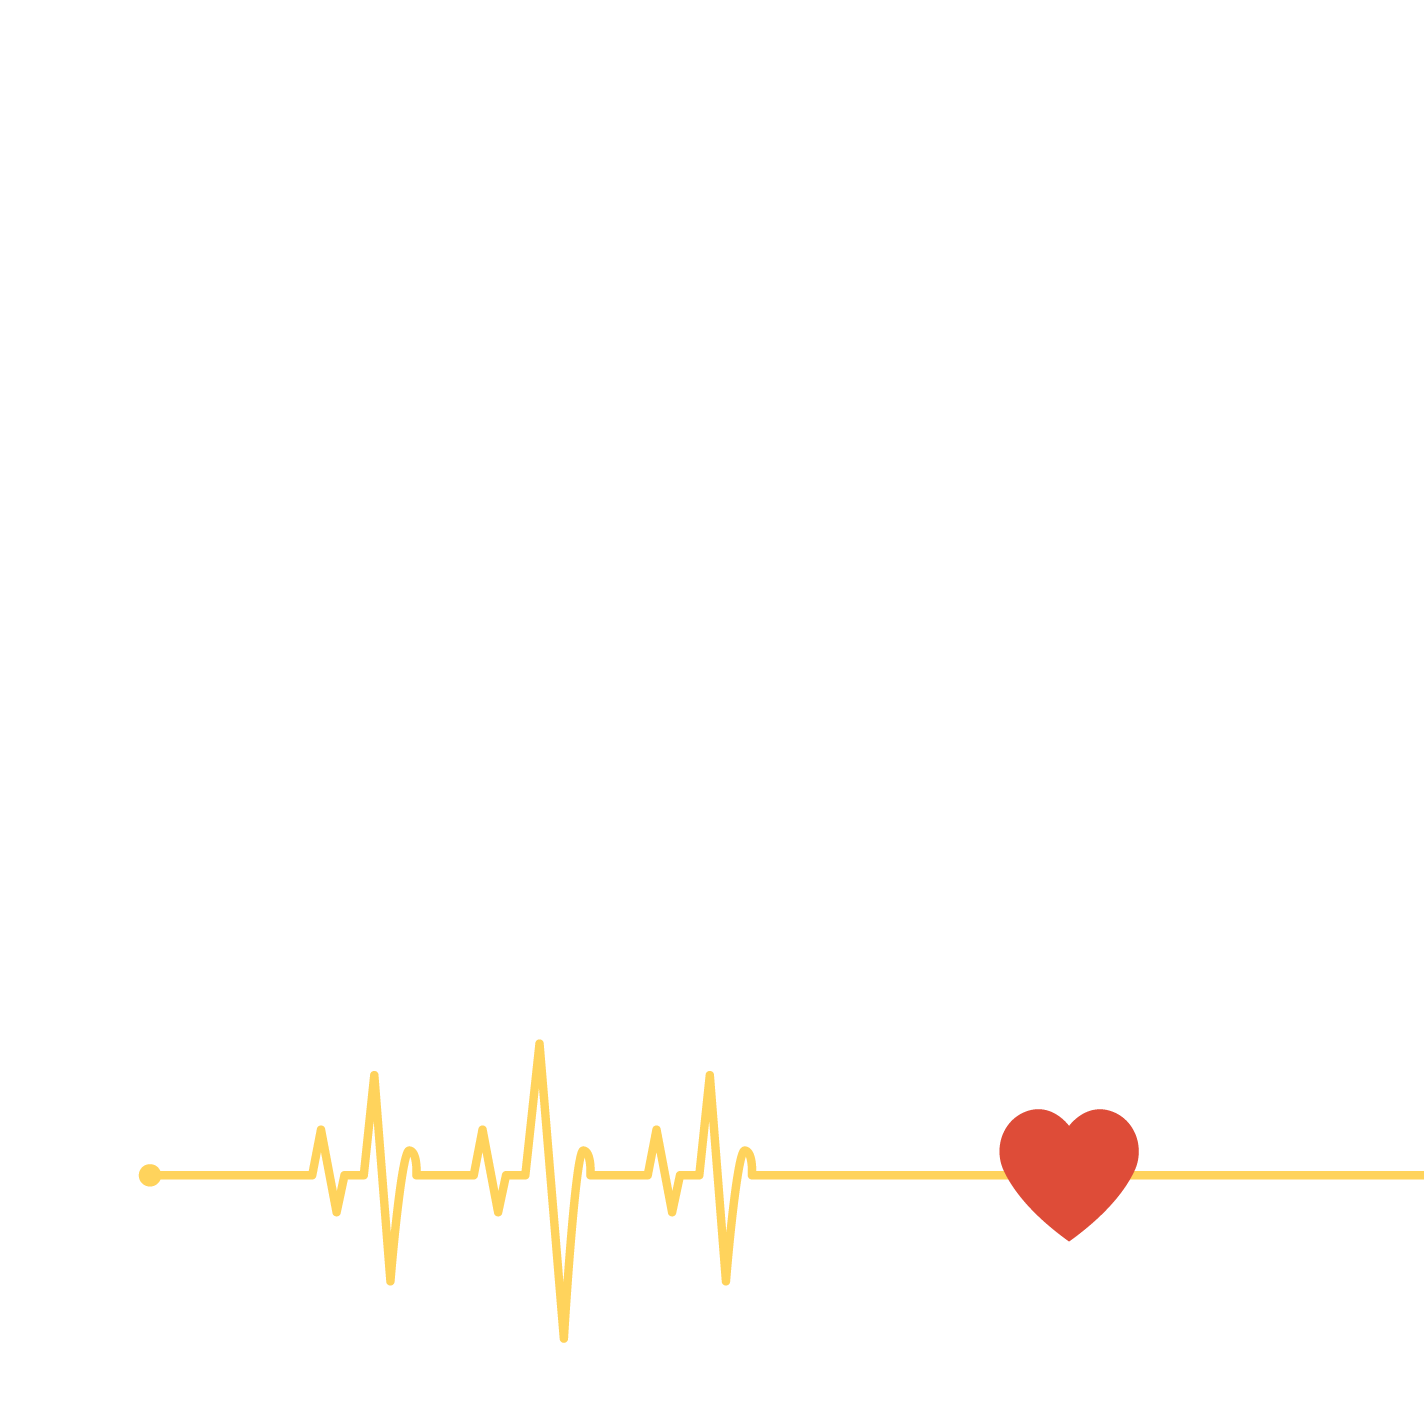 ECG lines from a heart